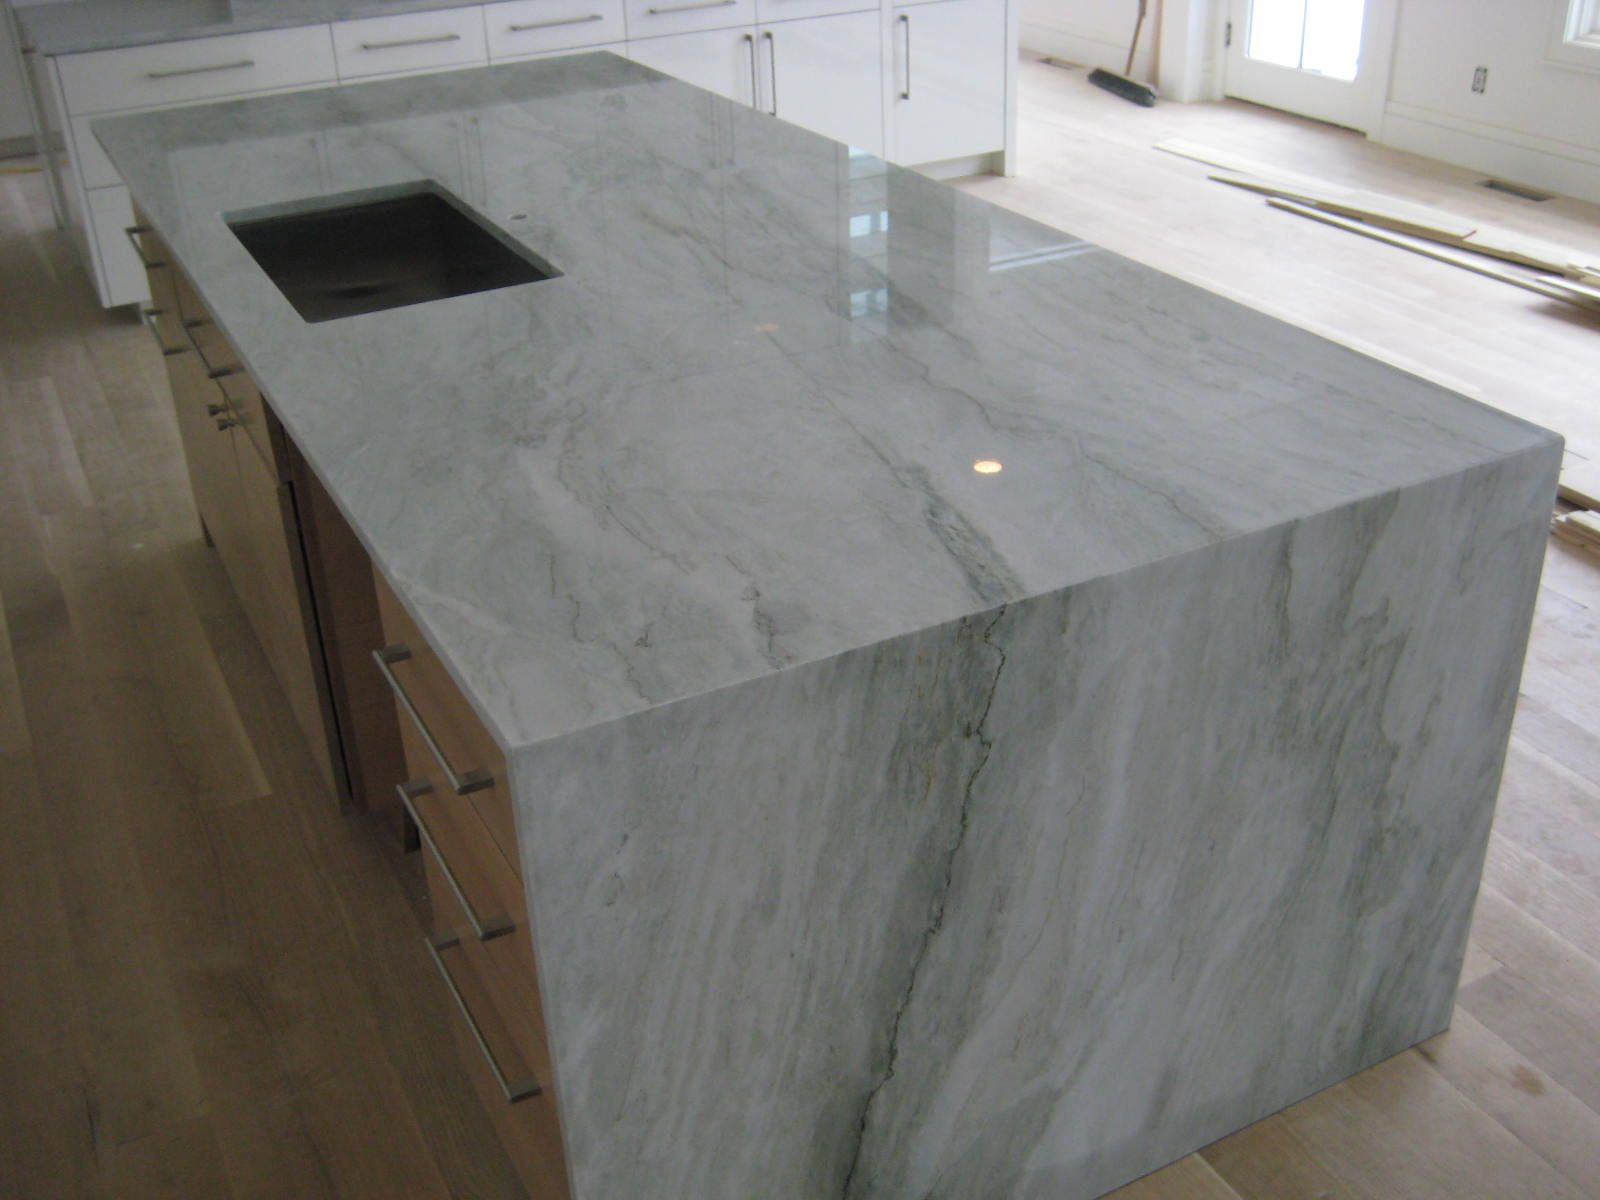 Captivating Sea Pearl Quartzite   Very Pale Grey W/ Minor Green Tint, Lovely Color And  Veining